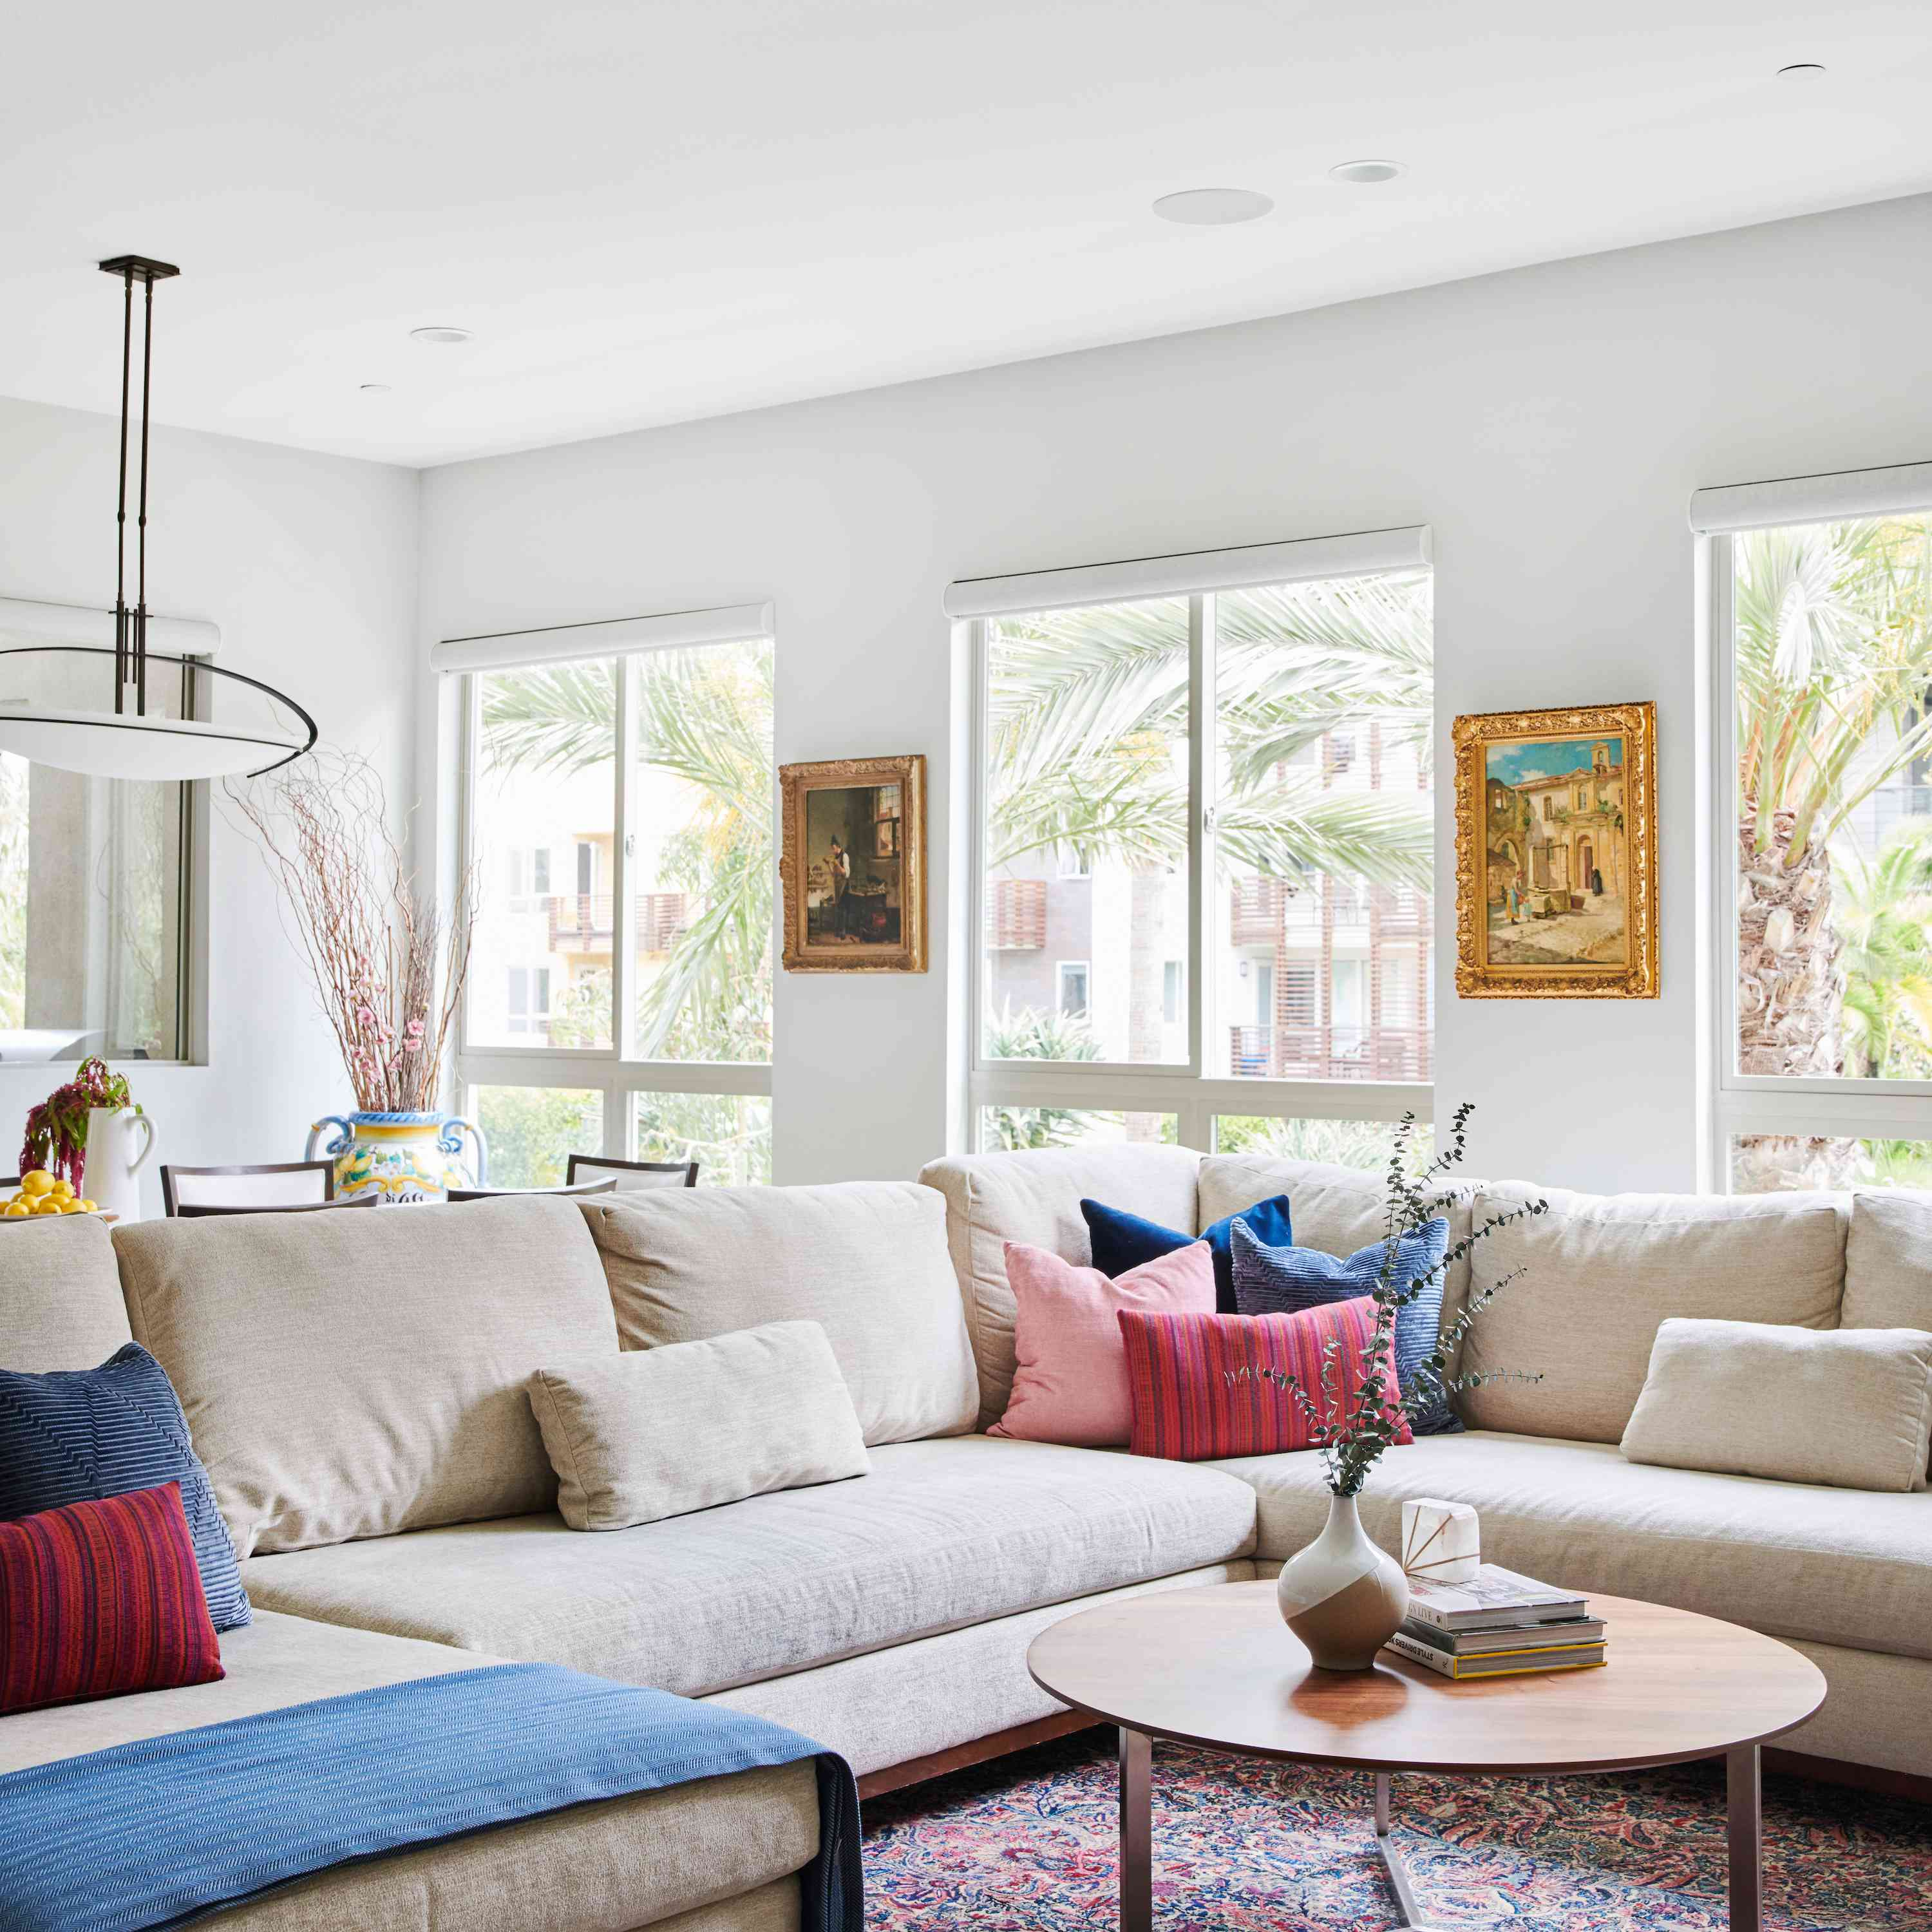 Large beige living room sectional.